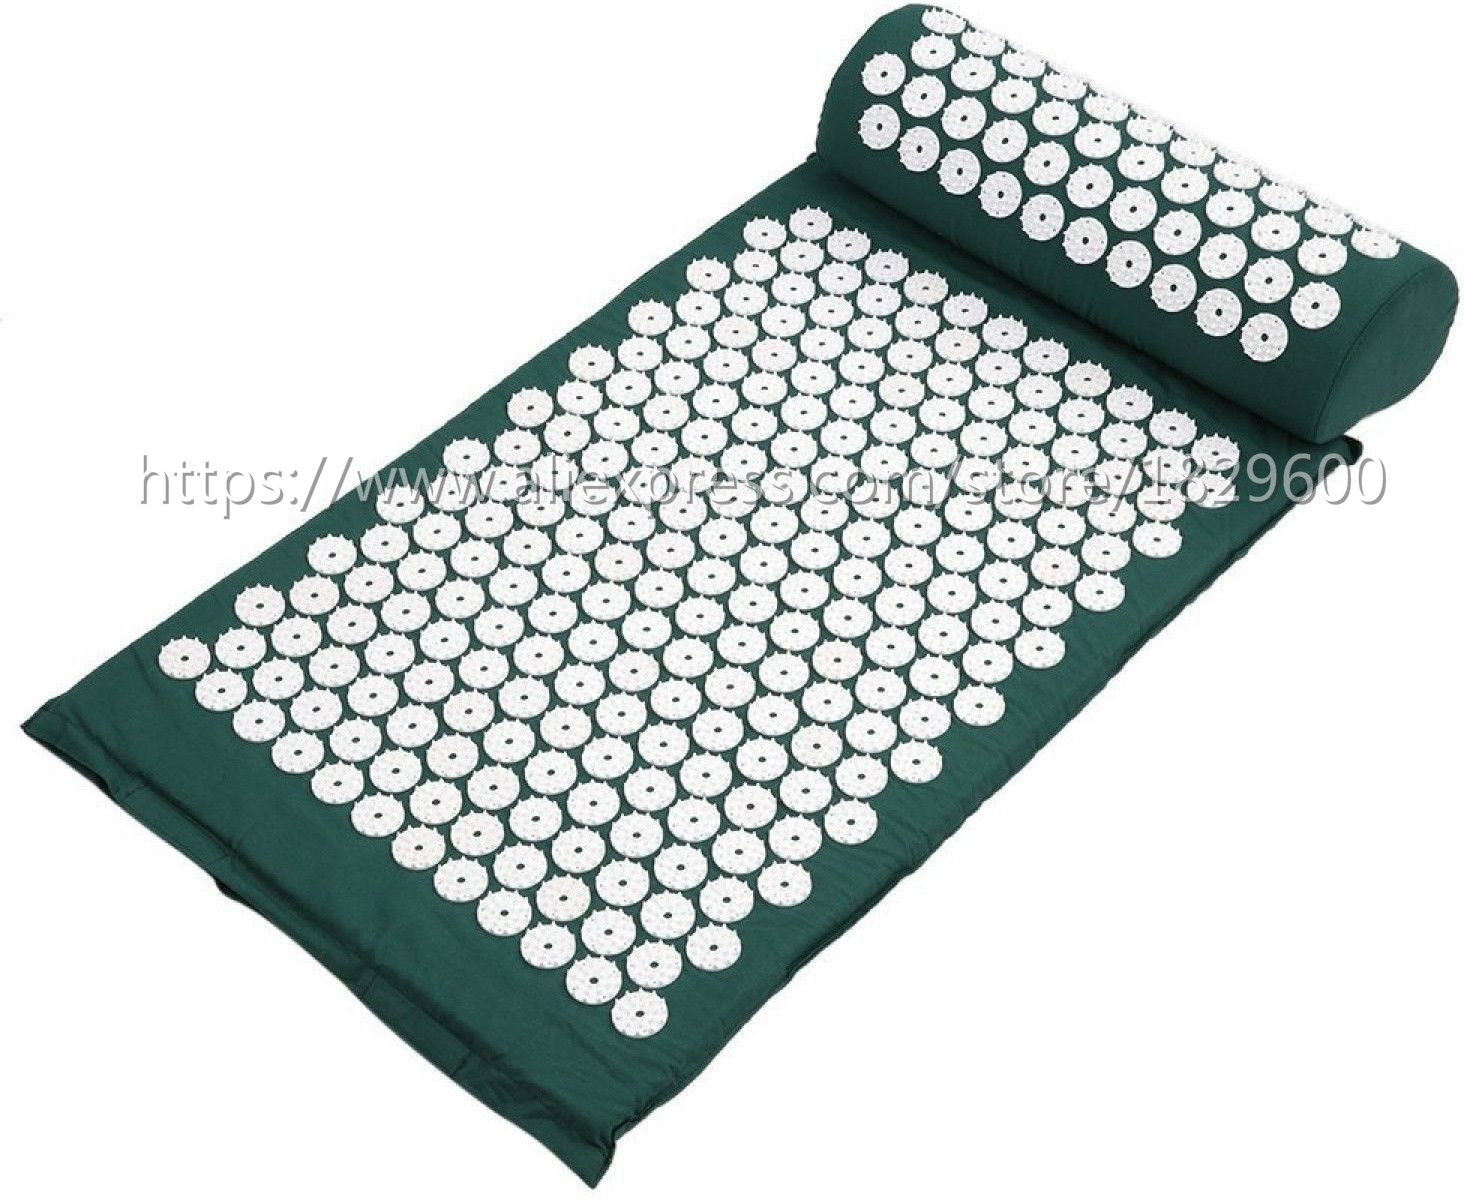 Dropshipping Acupressure Massager Mat Relieve Stress Pain Yoga Mat Natural Relief Stress Tension Body Massage Pillow Cushion dermalogica масло успокаивающее антистрессовое stress relief treatment oli spa body therapy 100мл